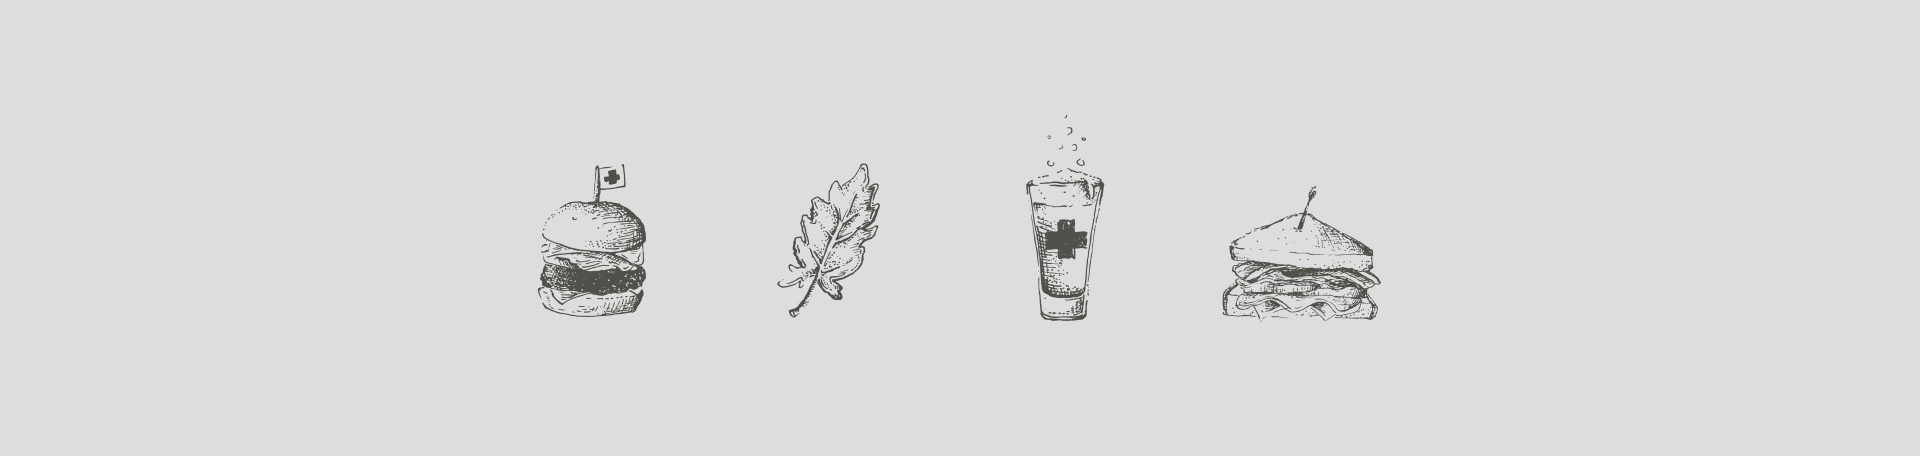 Burger, salad leaf, beer, and sandwich illustrations by hand, drawn for The Common Cure restaurant identity.